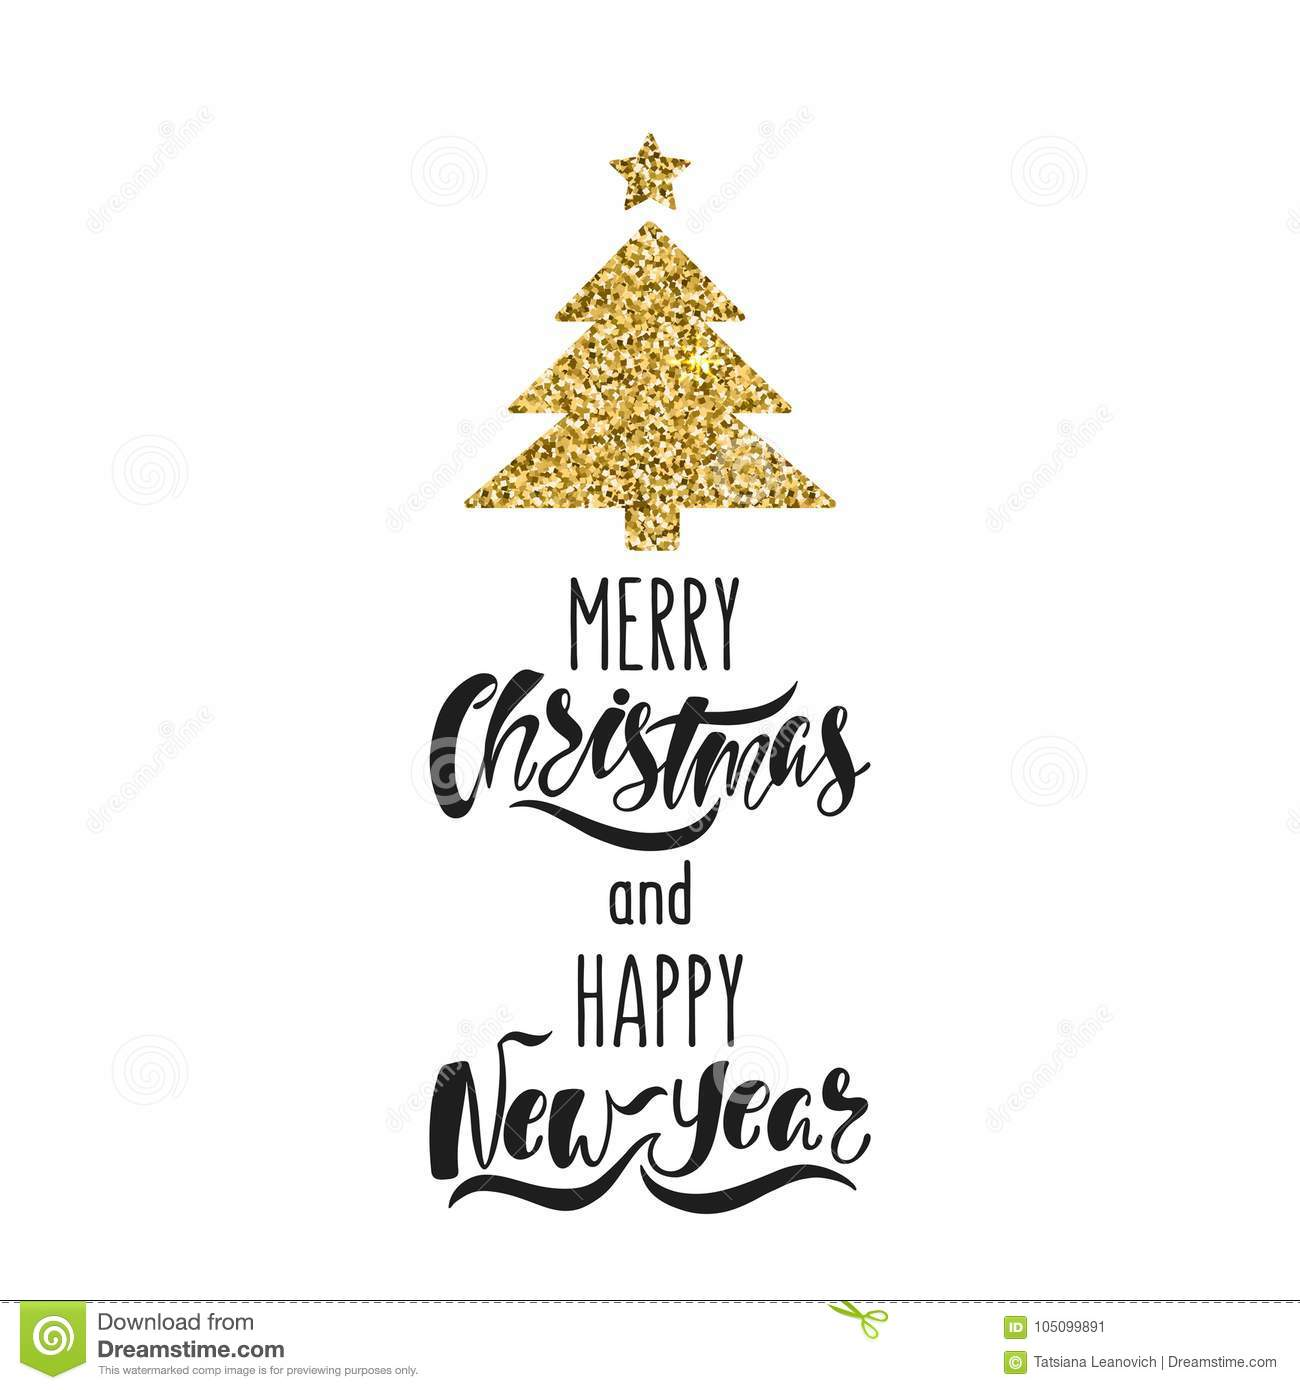 merry christmas and happy new year hand drawn calligraphy text holiday typography design with glitter christmas tree stock vector illustration of glossy merry 105099891 https www dreamstime com merry christmas happy new year hand drawn calligraphy text holiday typography design glitter tree black gold greeting image105099891